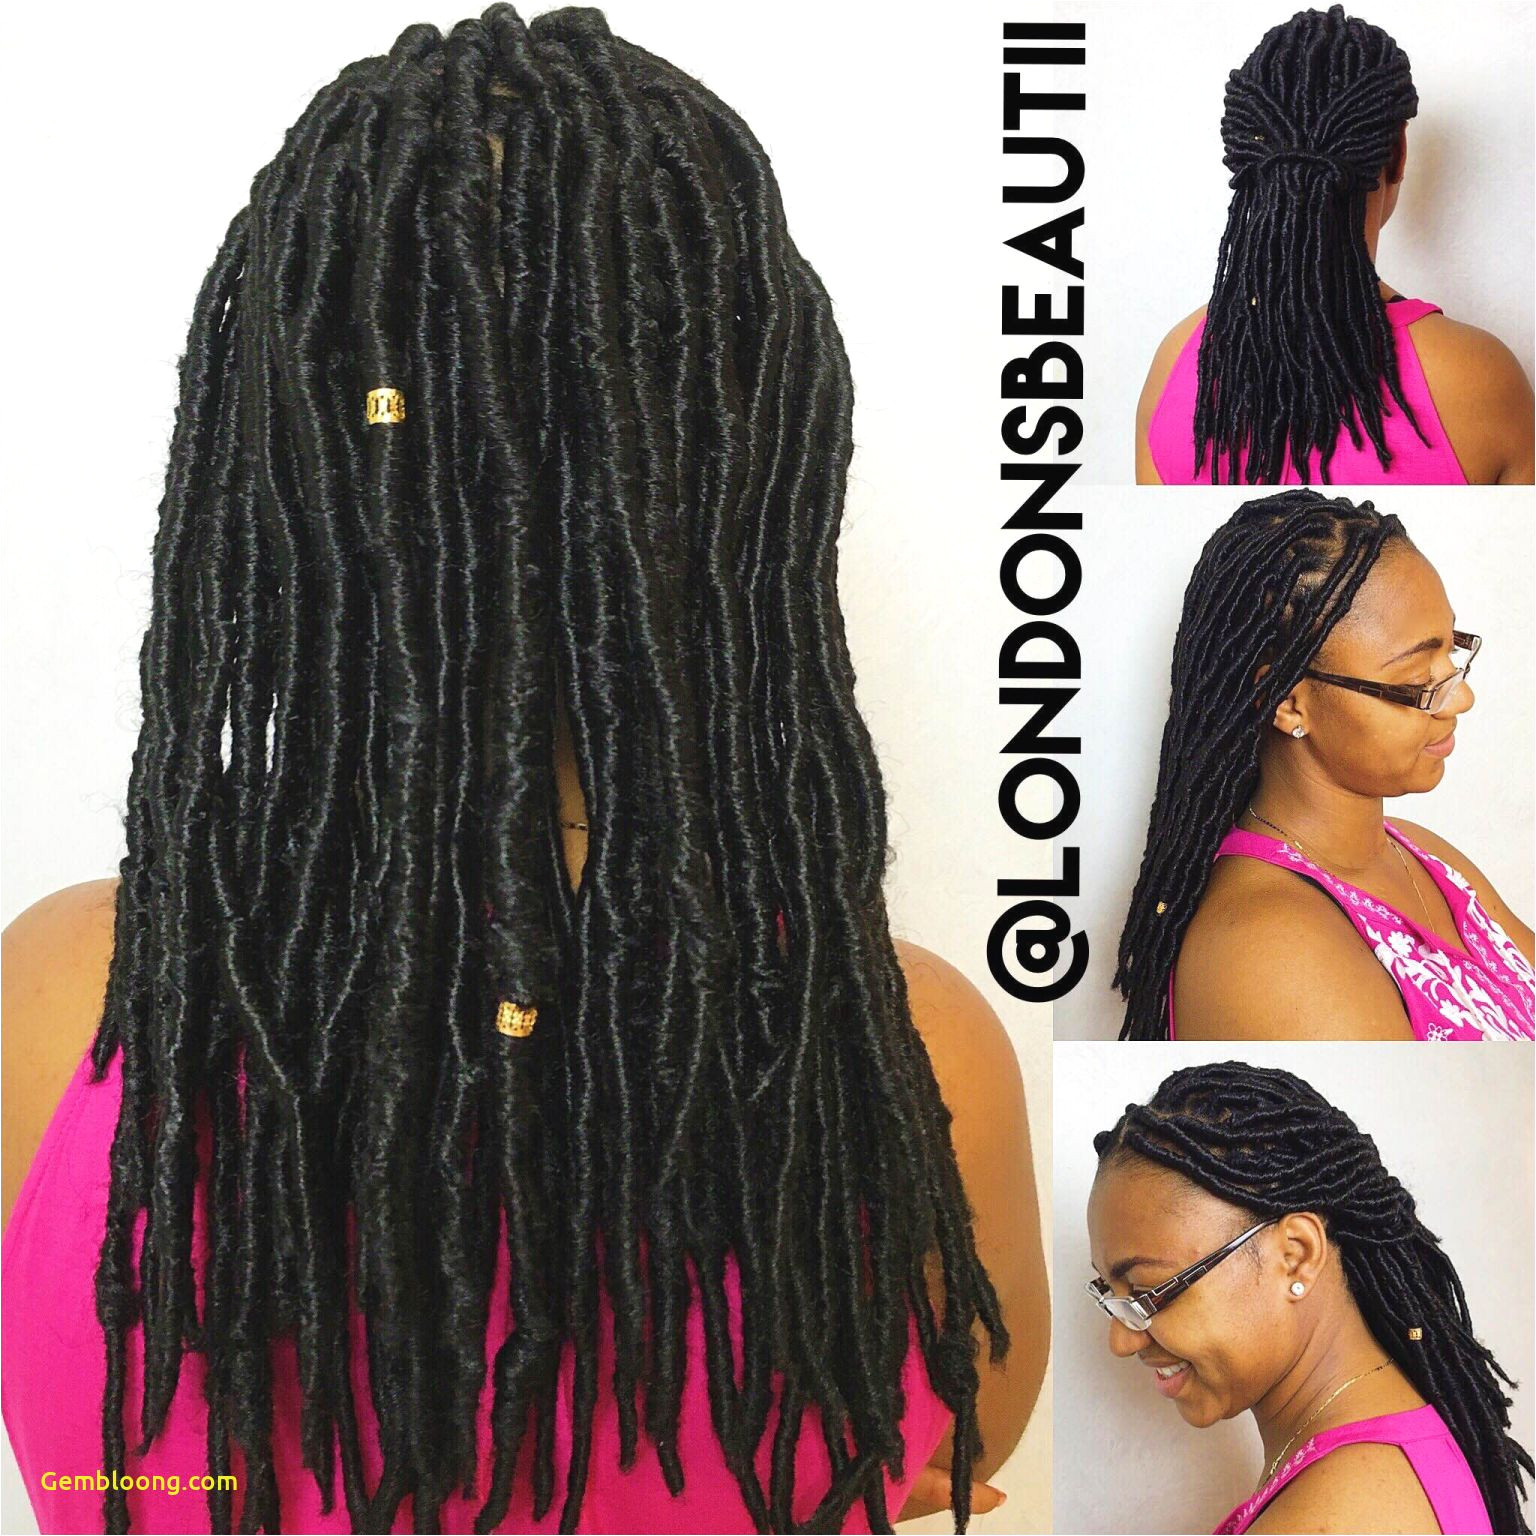 New Dreads Hairstyles ☞ 99 New Long Dreads Hairstyles to Make You Look Confident